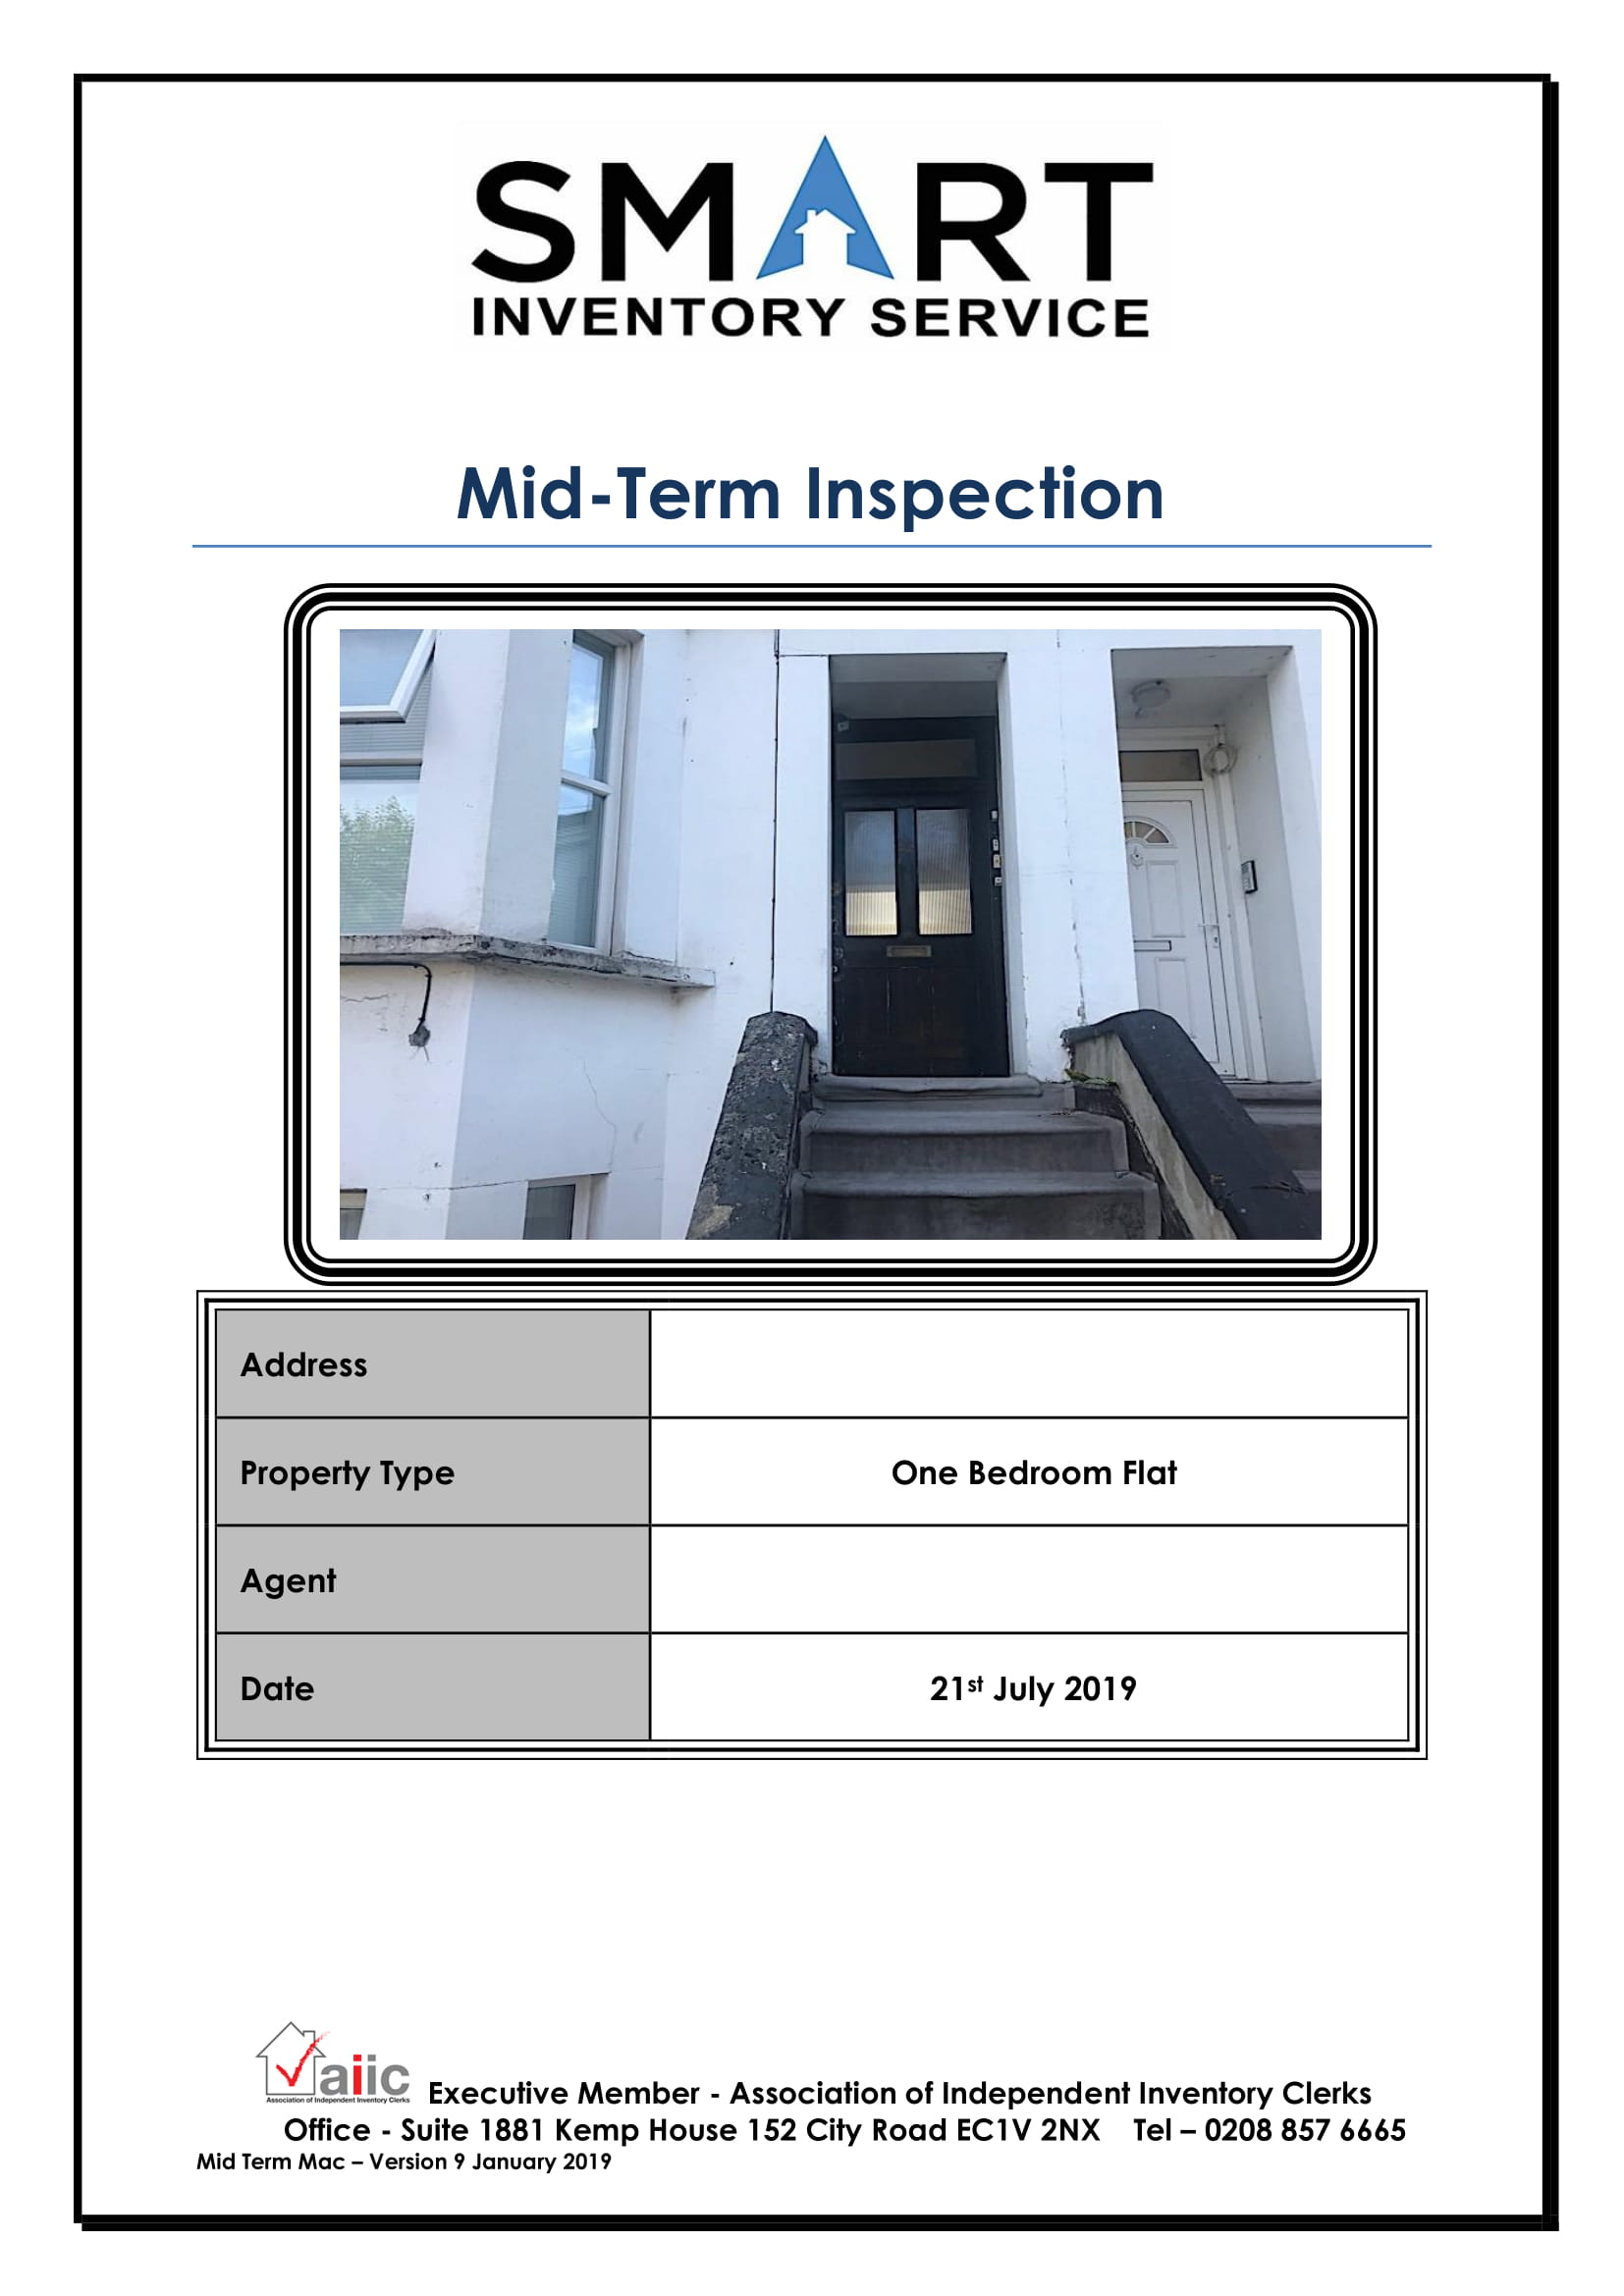 Smart Inventory Mid-term Inspection Image